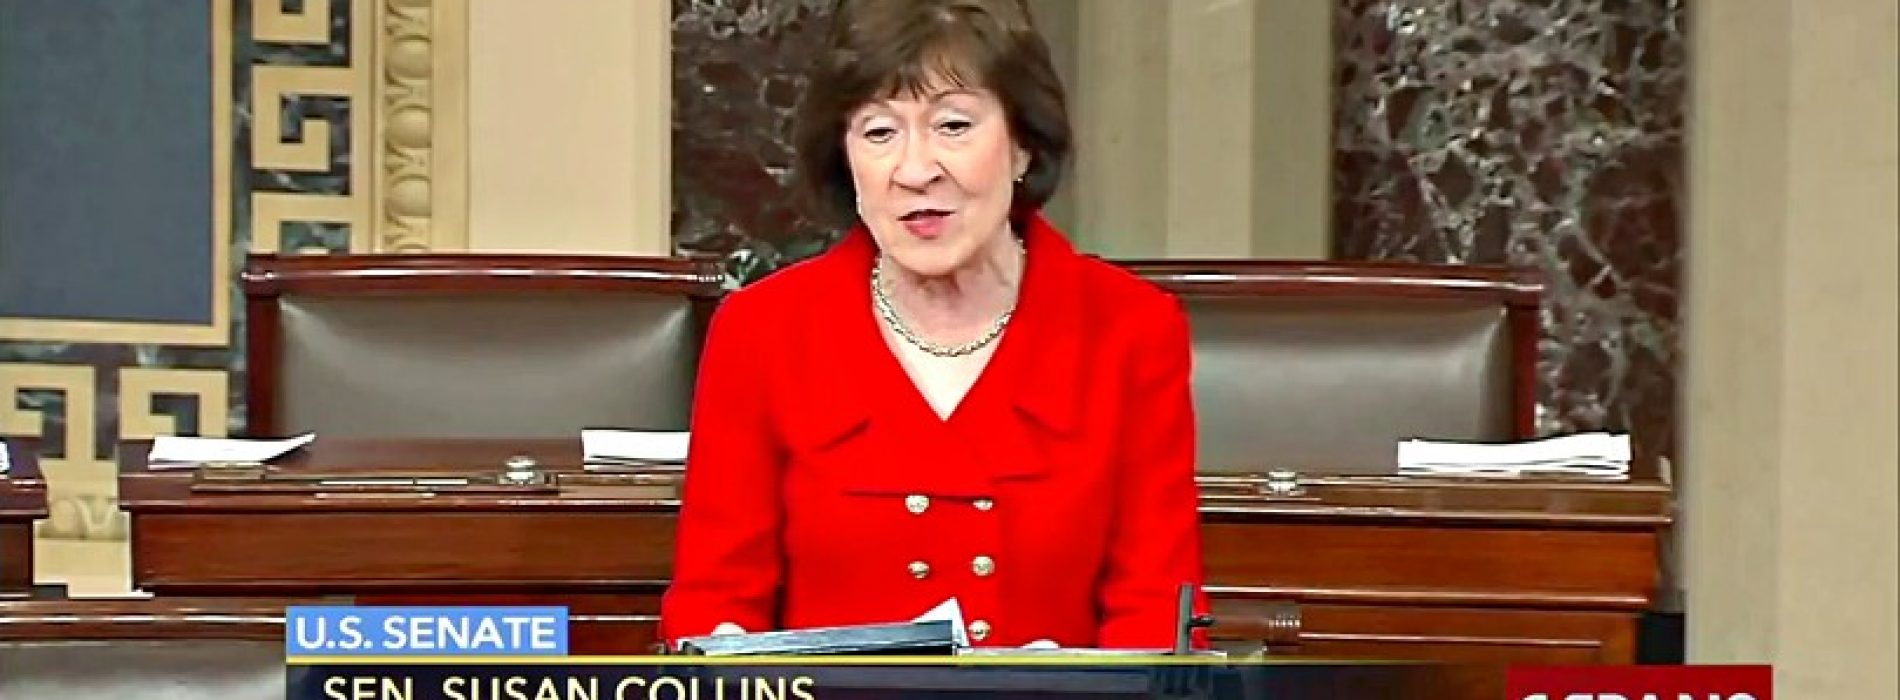 Image result for CARTOONS OF LISA MURKOWSKI COLLINS